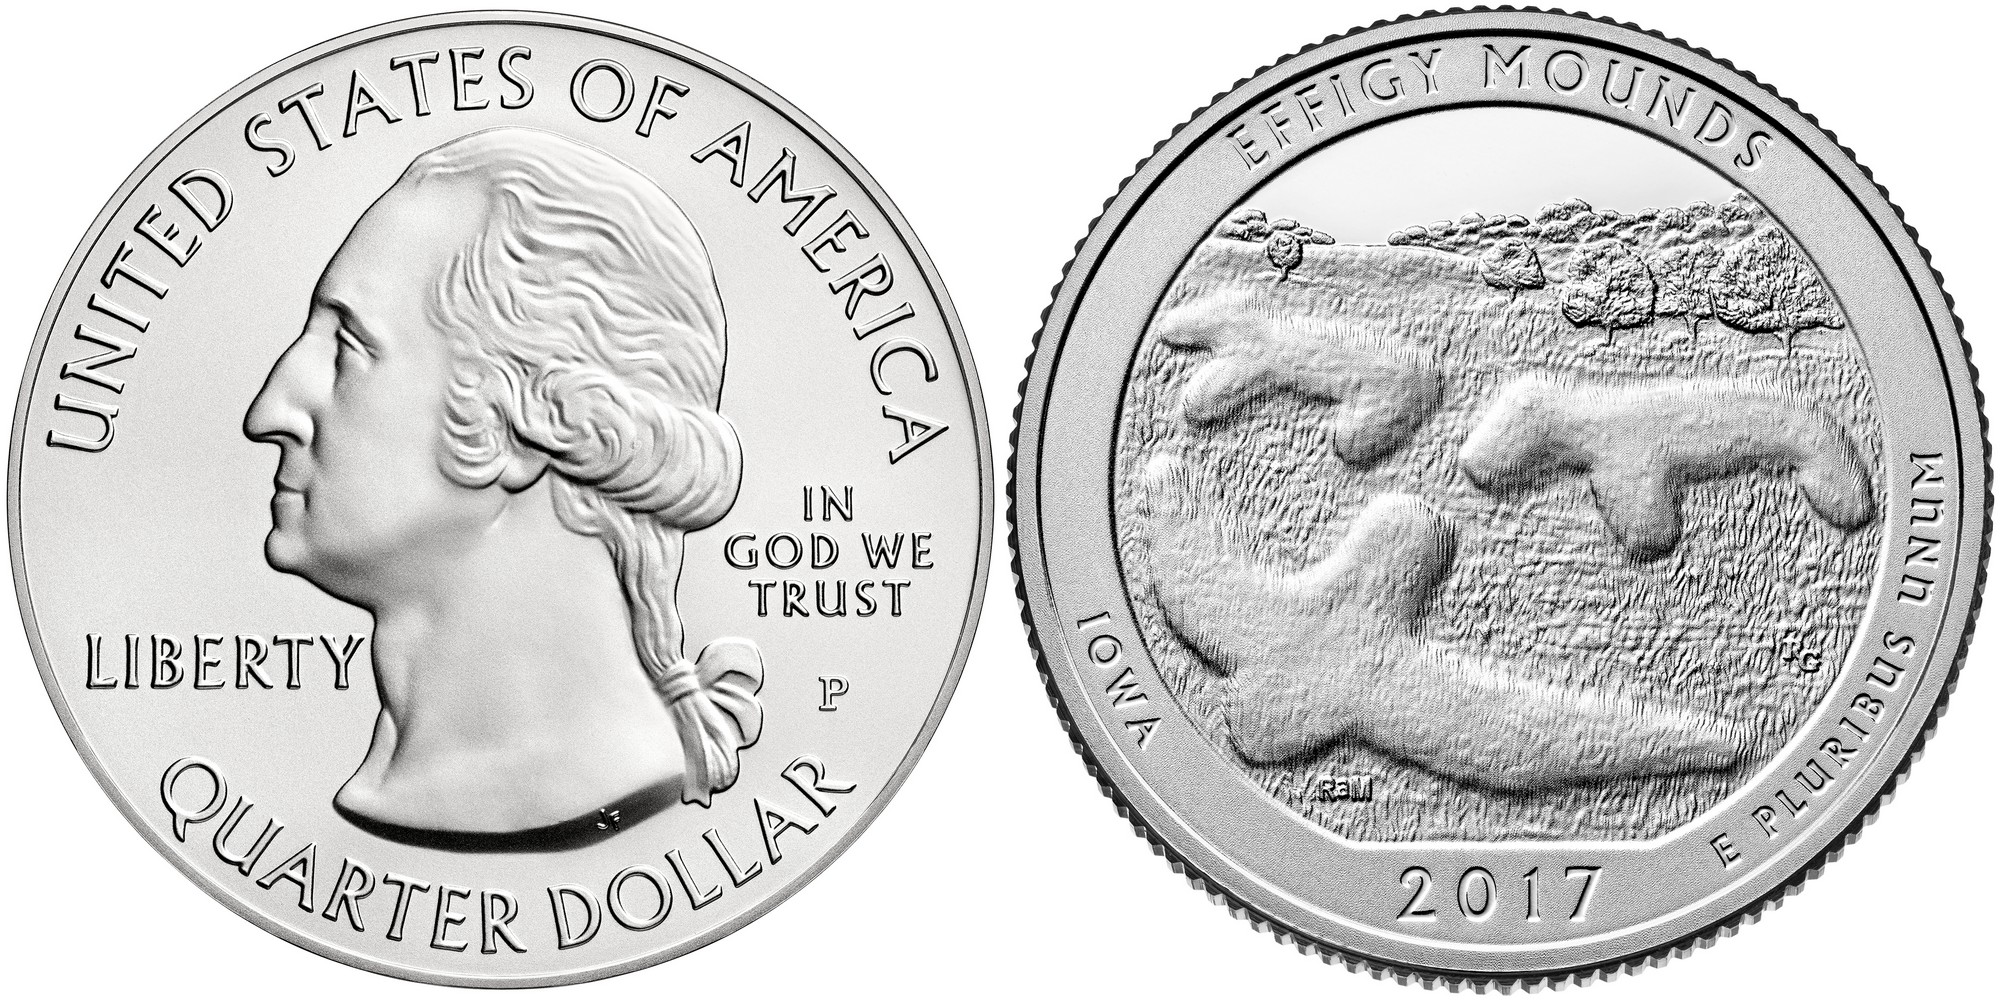 états-unis 2017 quarter iowa effigy mounds